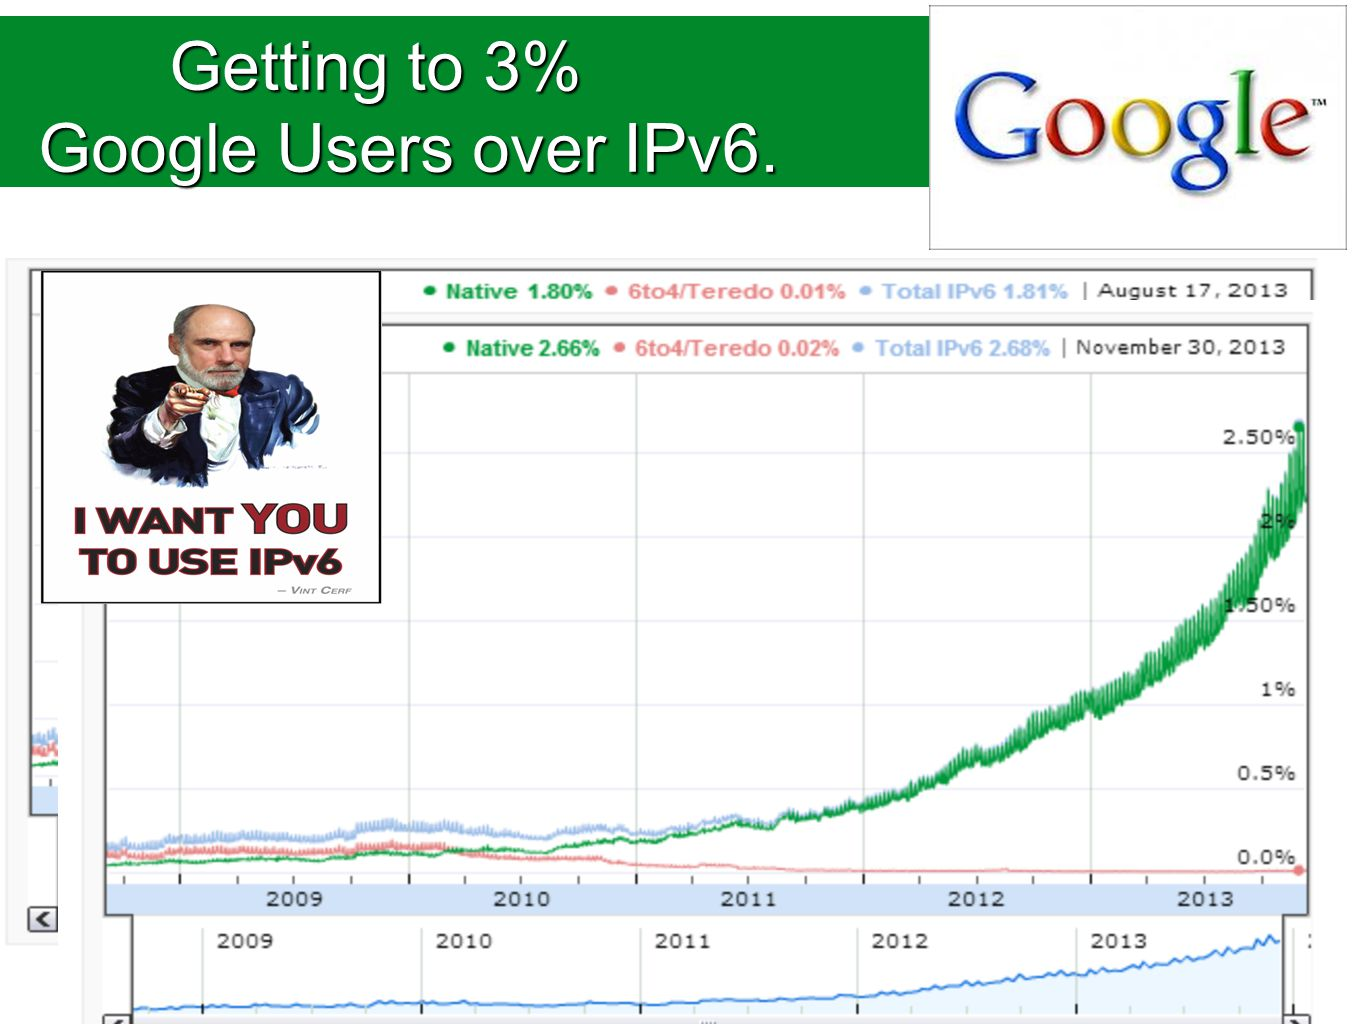 Getting to 3% Google Users over IPv6. Getting to 3% Google Users over IPv6.